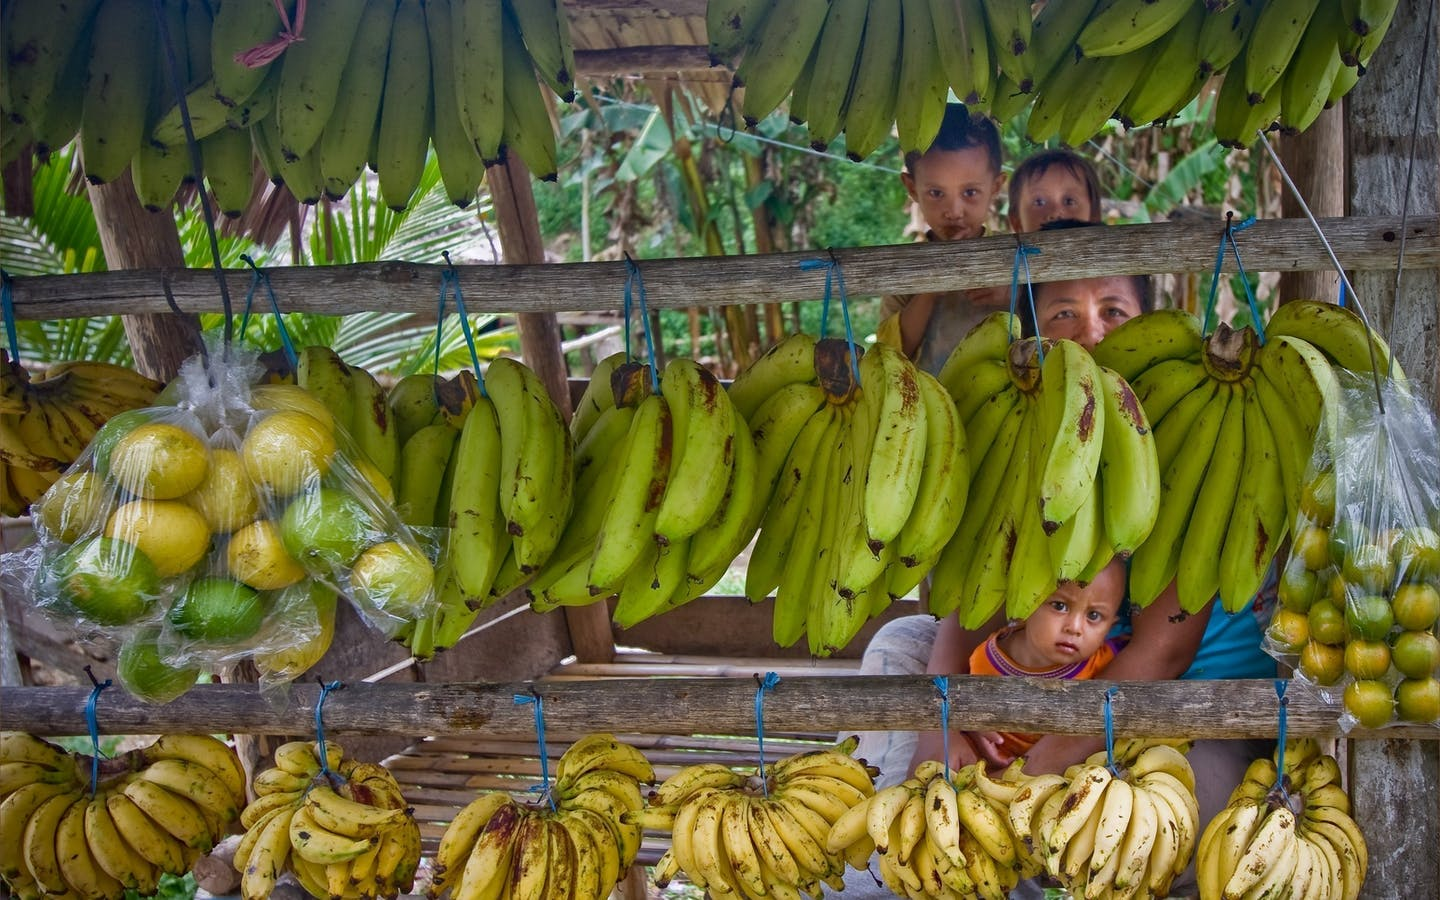 A family peers from behind rows of bananas and limes at a roadside stall in Central Sulawesi, Indonesia